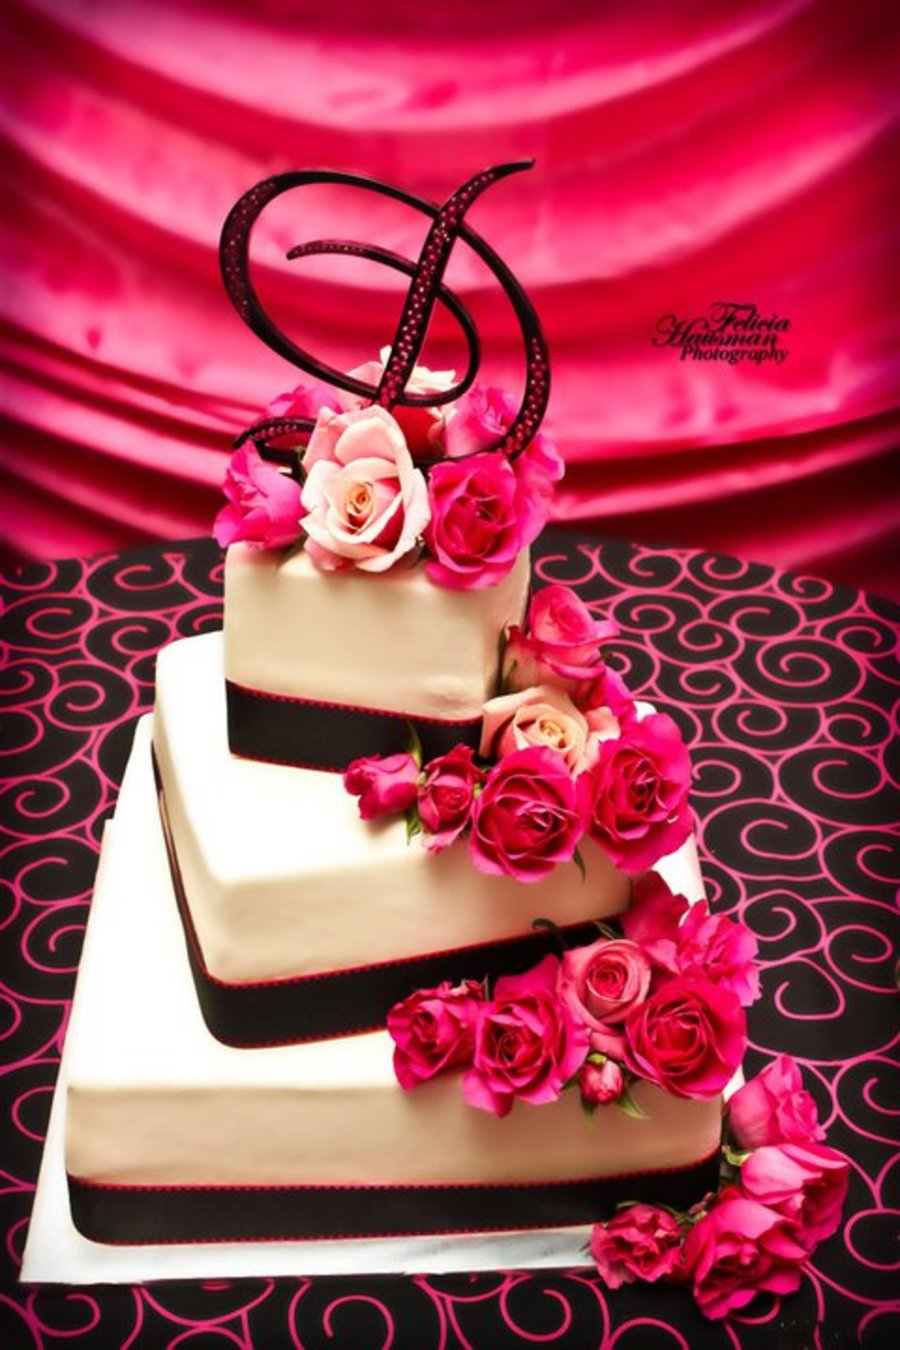 Pink And Black Square Offset Wedding Cake - CakeCentral.com